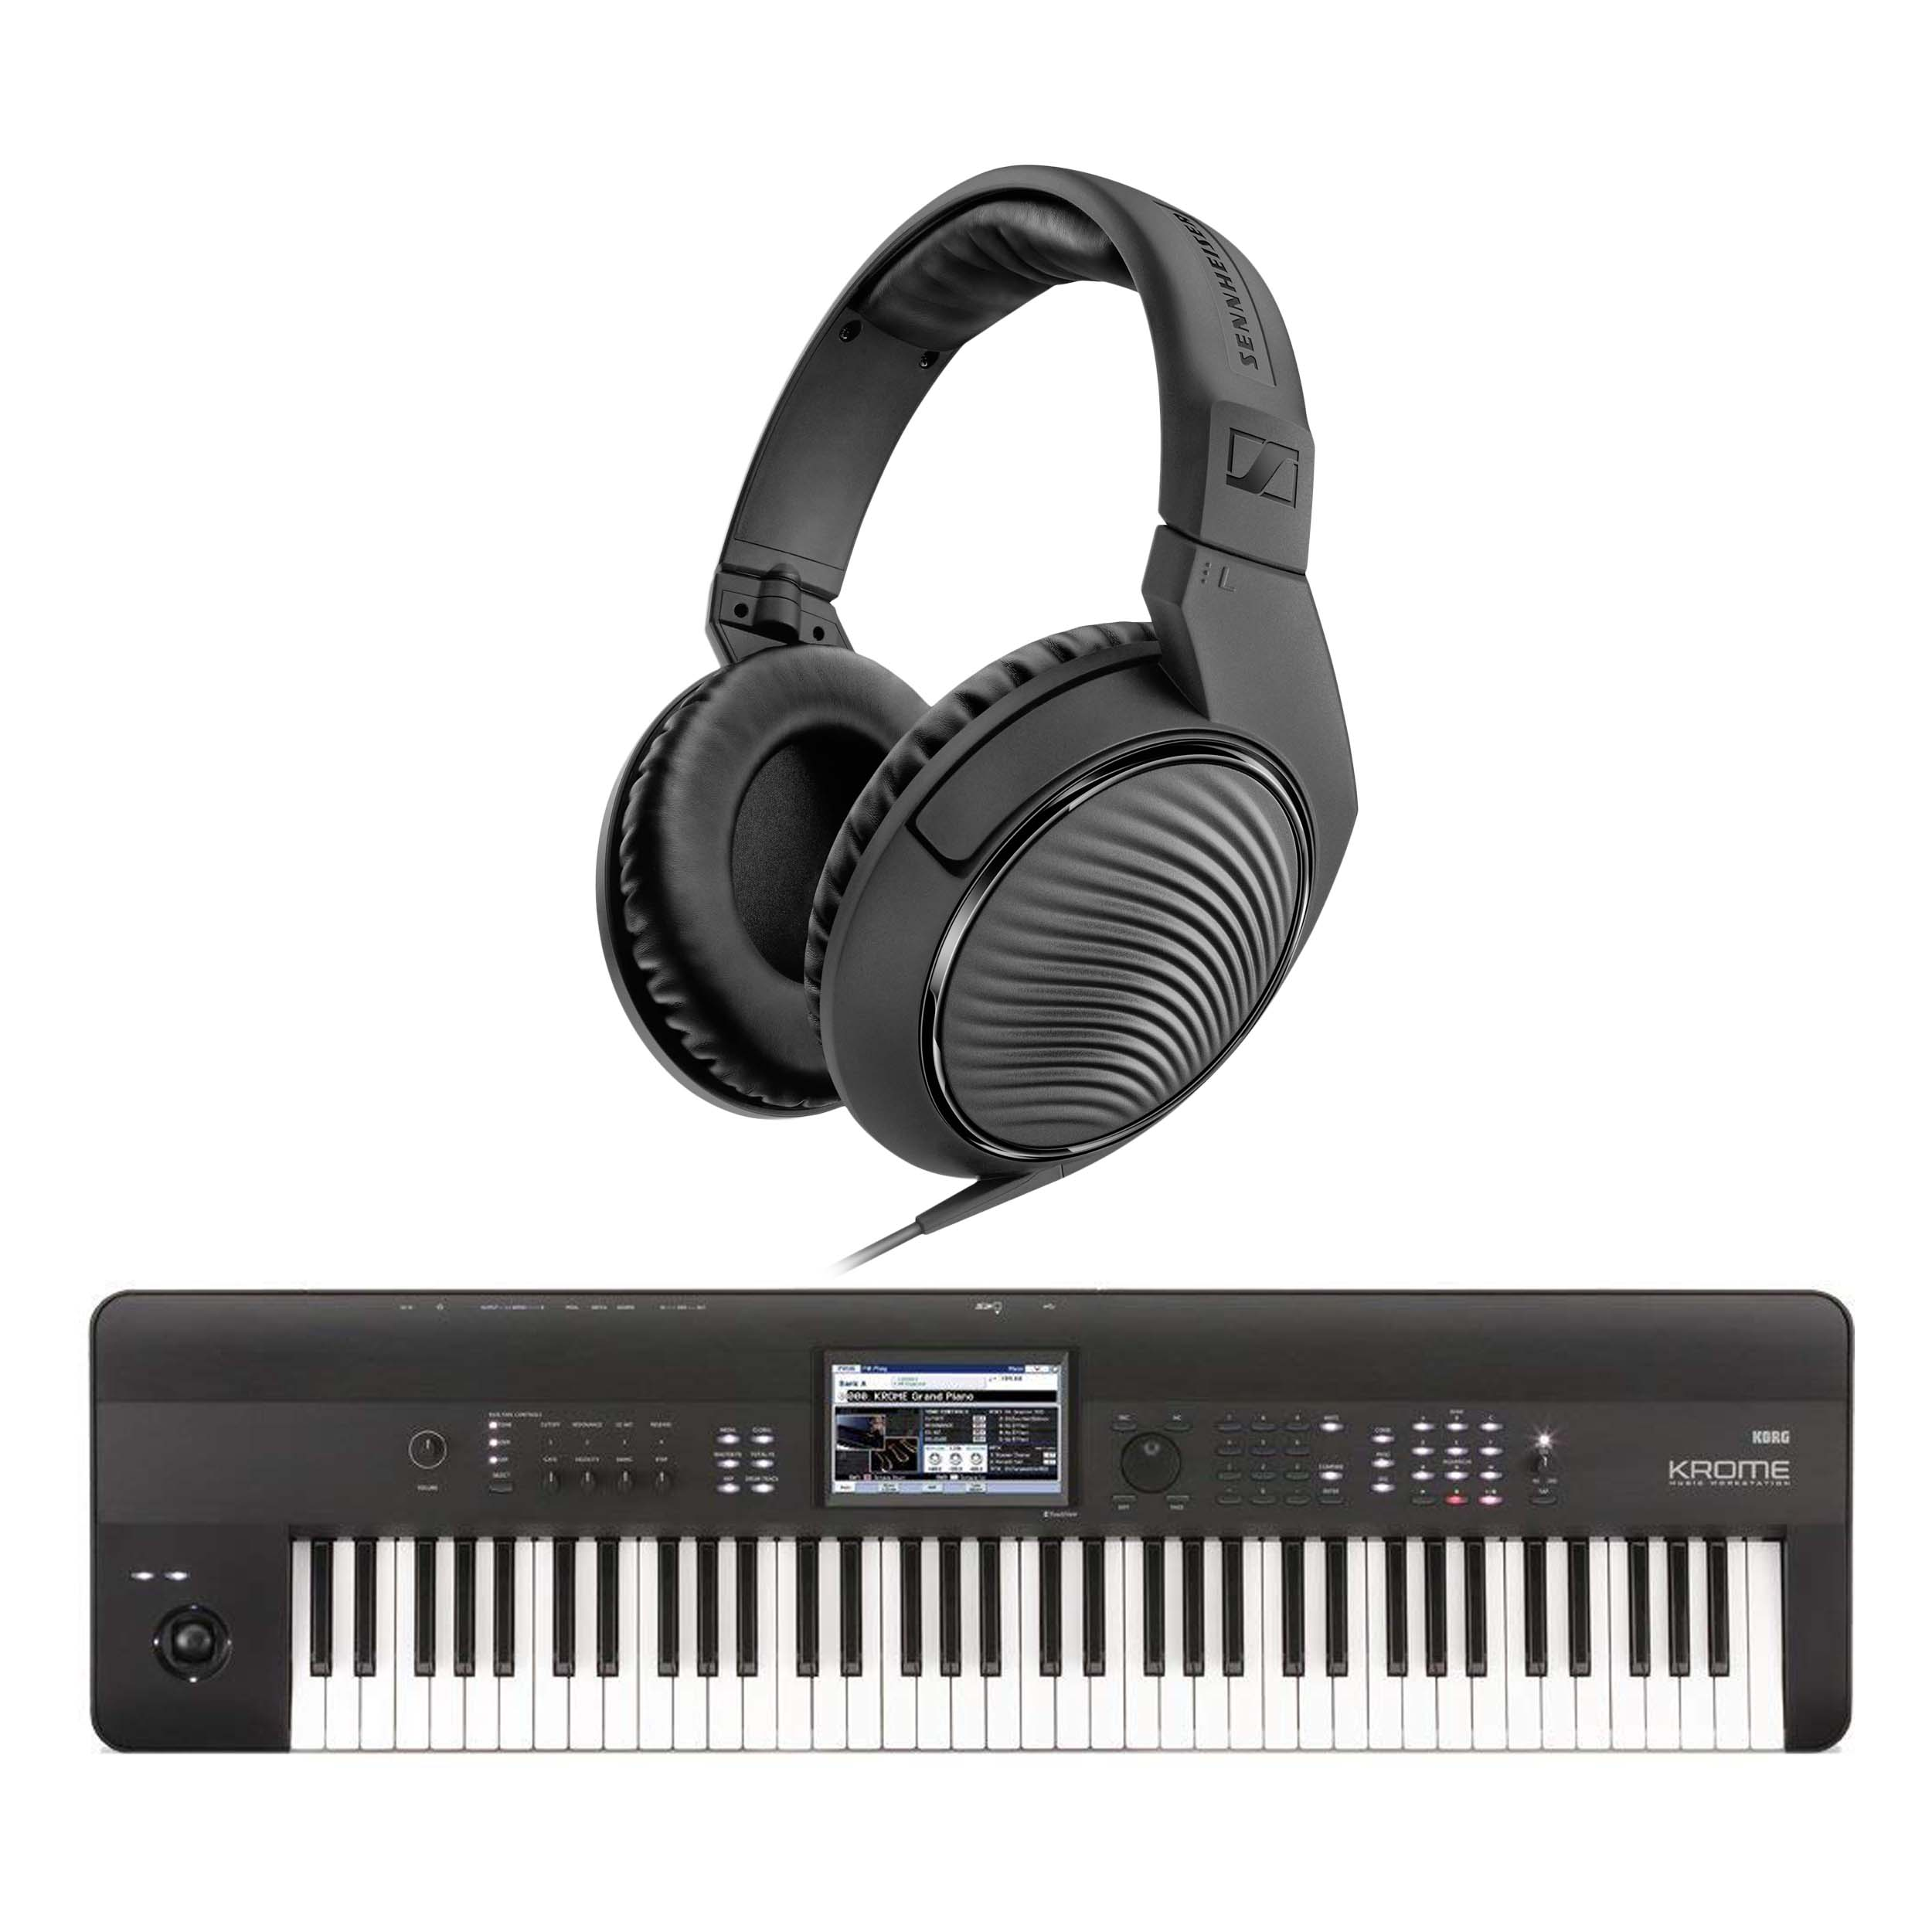 Details about Korg Krome 73 Keyboard 73-Note Workstation with FREE HD200PRO  Headphones